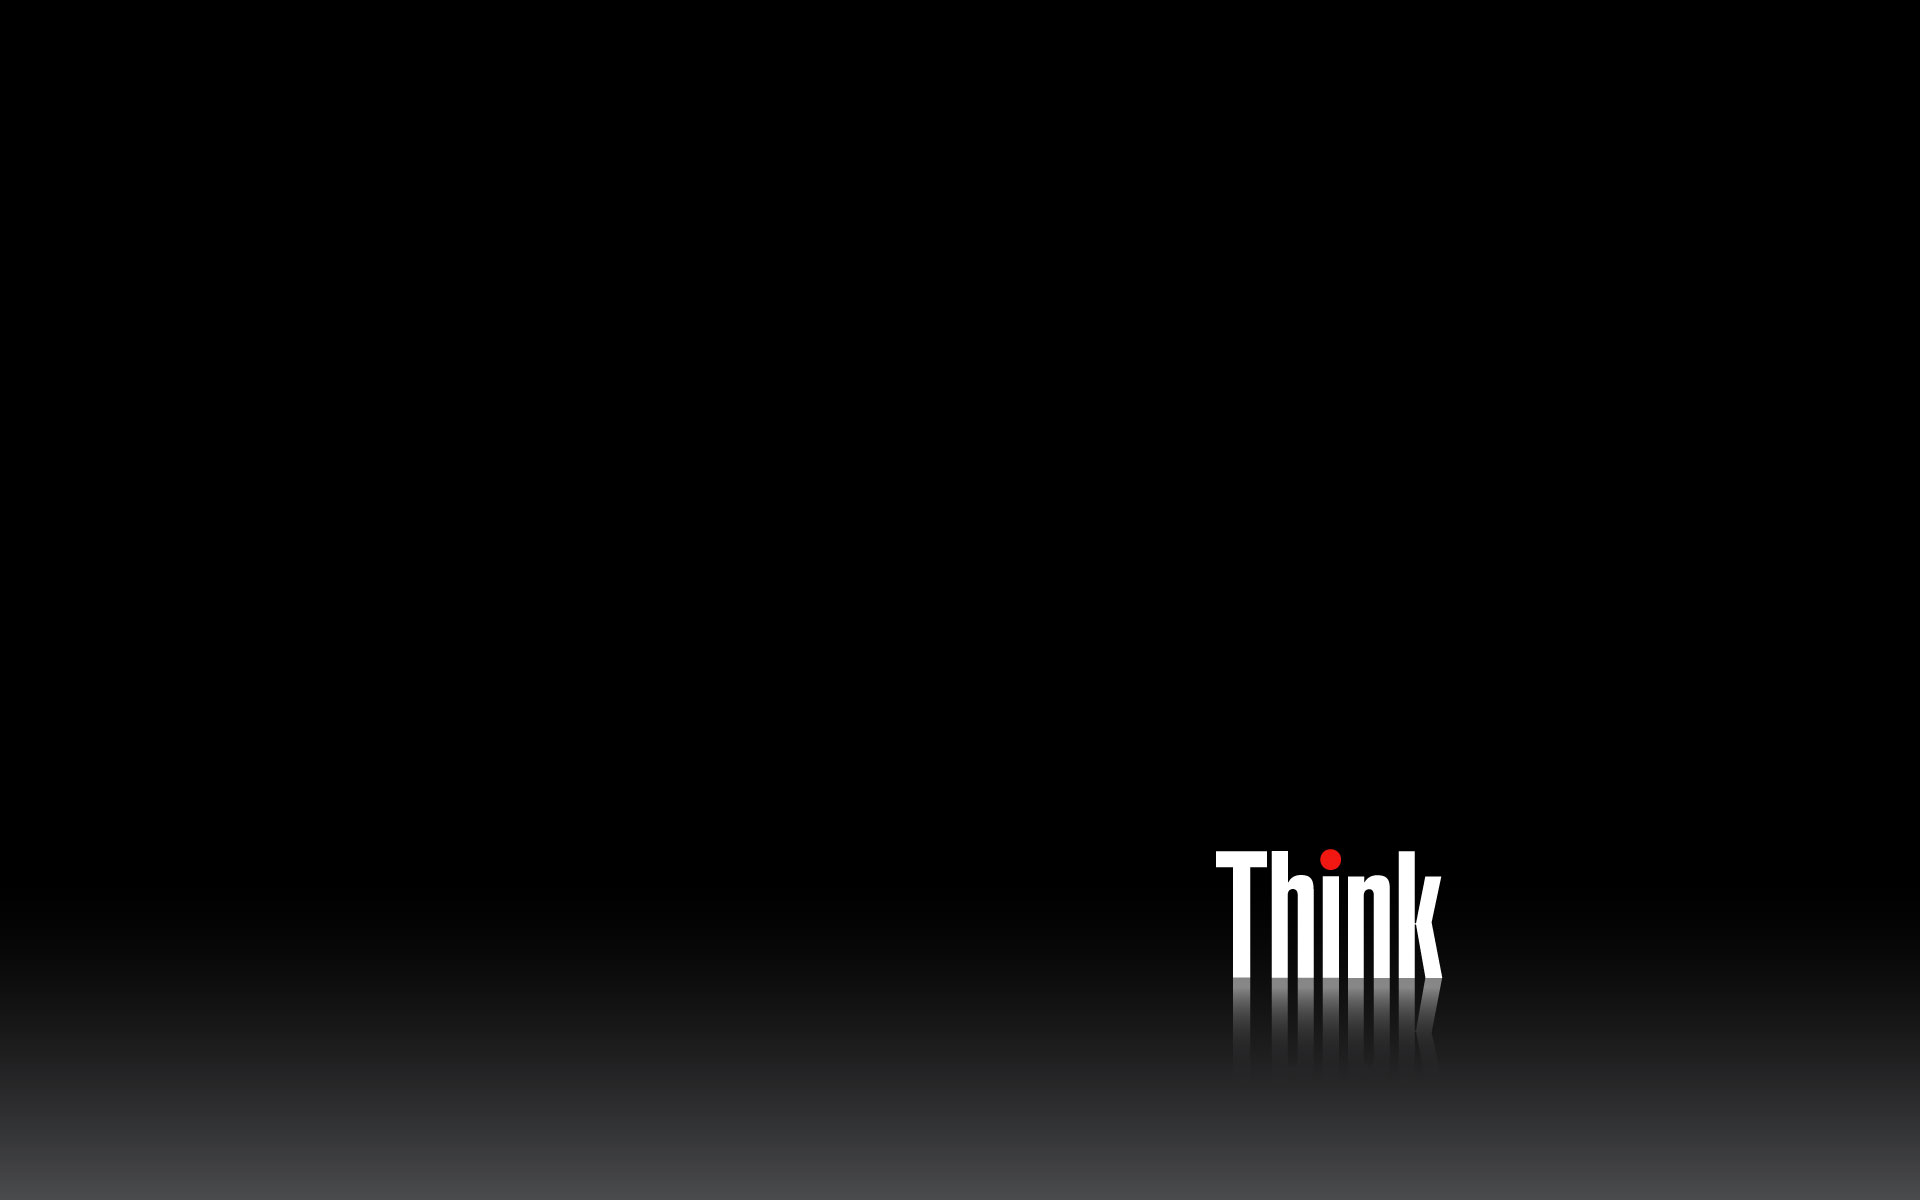 Thinkpad Wallpaper Hd Lenovo Thinkpad Wallpapers Download Free Pixelstalk Net